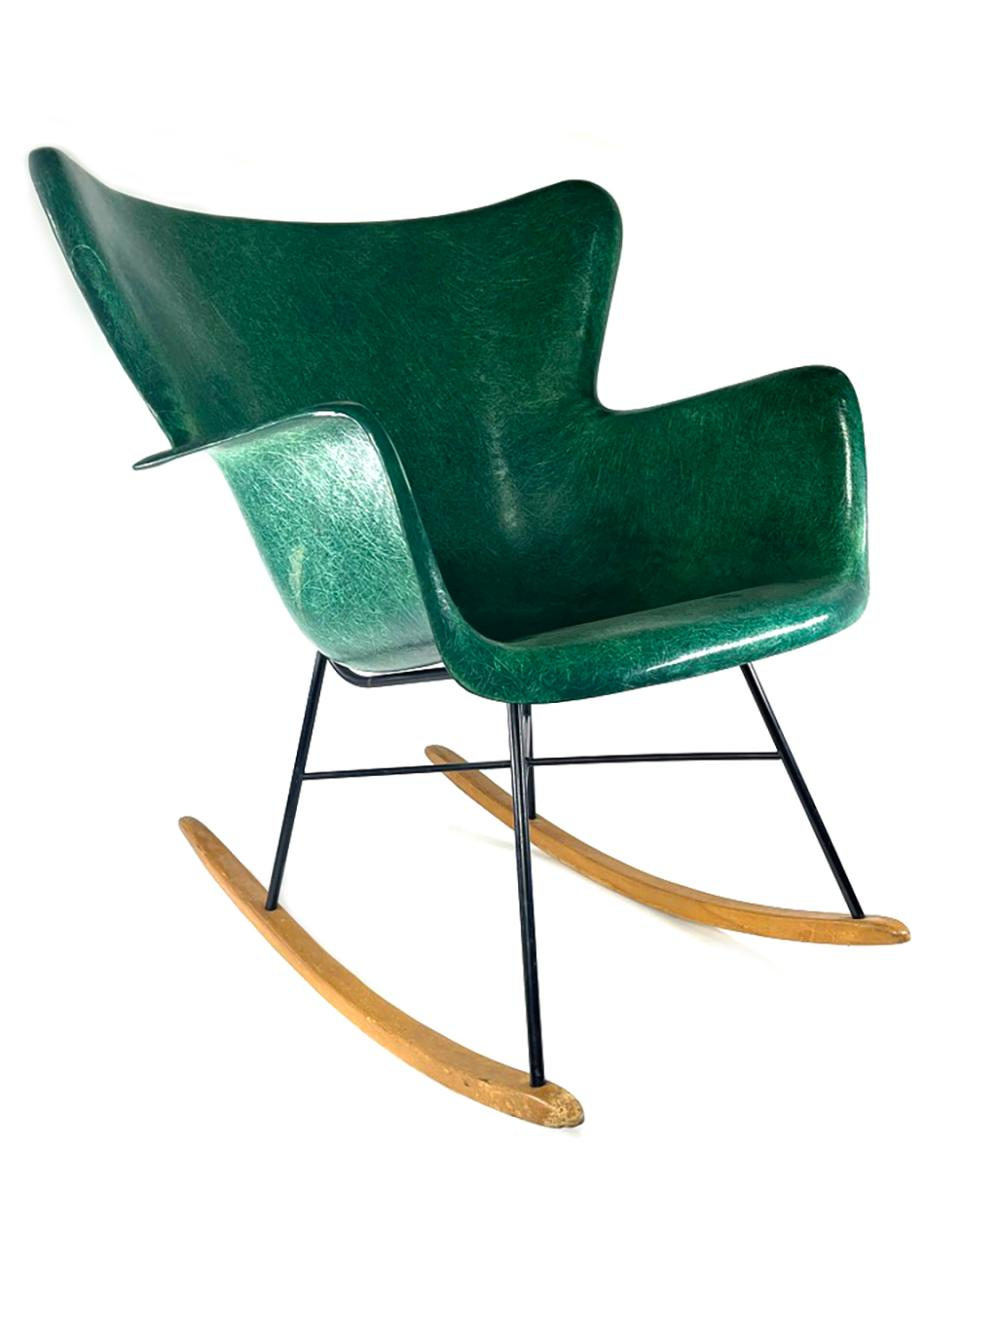 MCM Lawrence Peabody for Selig Molded Fiberglass Wingback Rocking Chair GREEN Shell Mid Century Modern